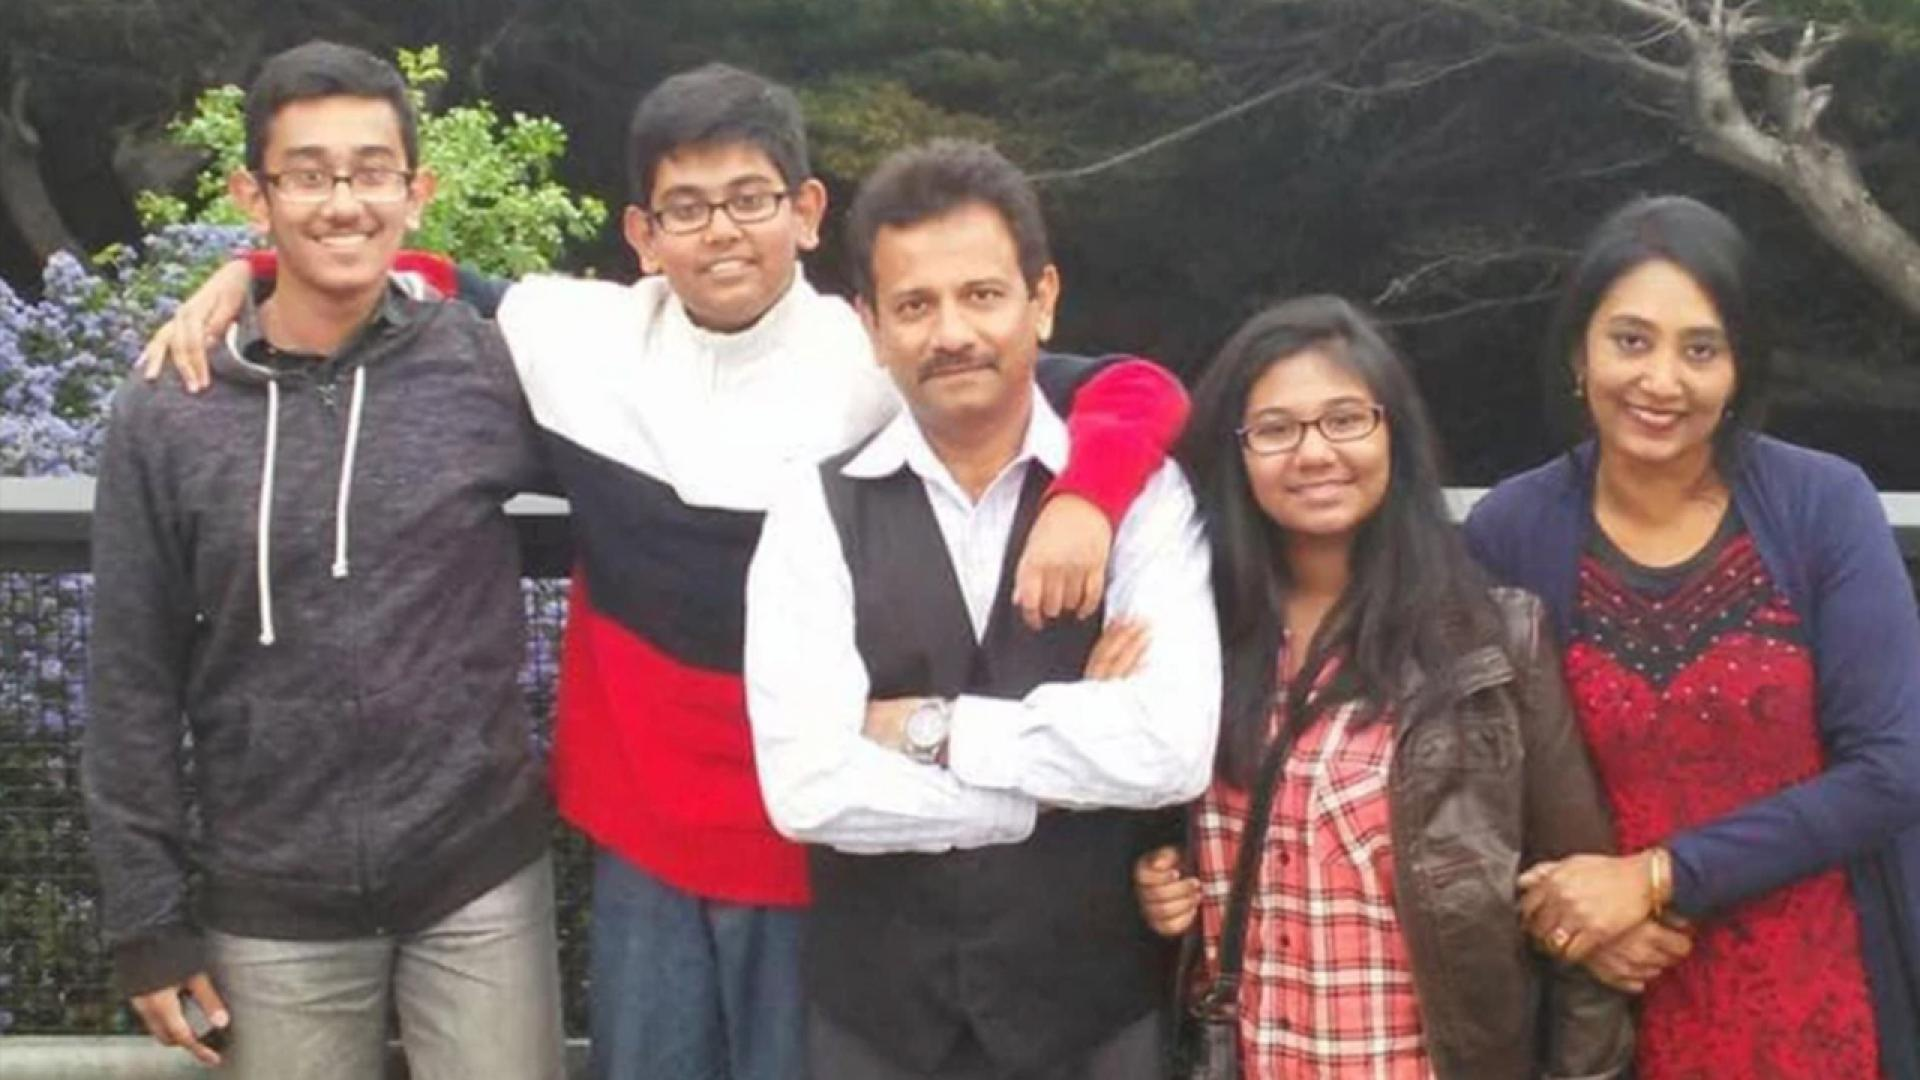 Farhan and Tanvir Towhid murdered four family members and then themselves in a murder-suicide.